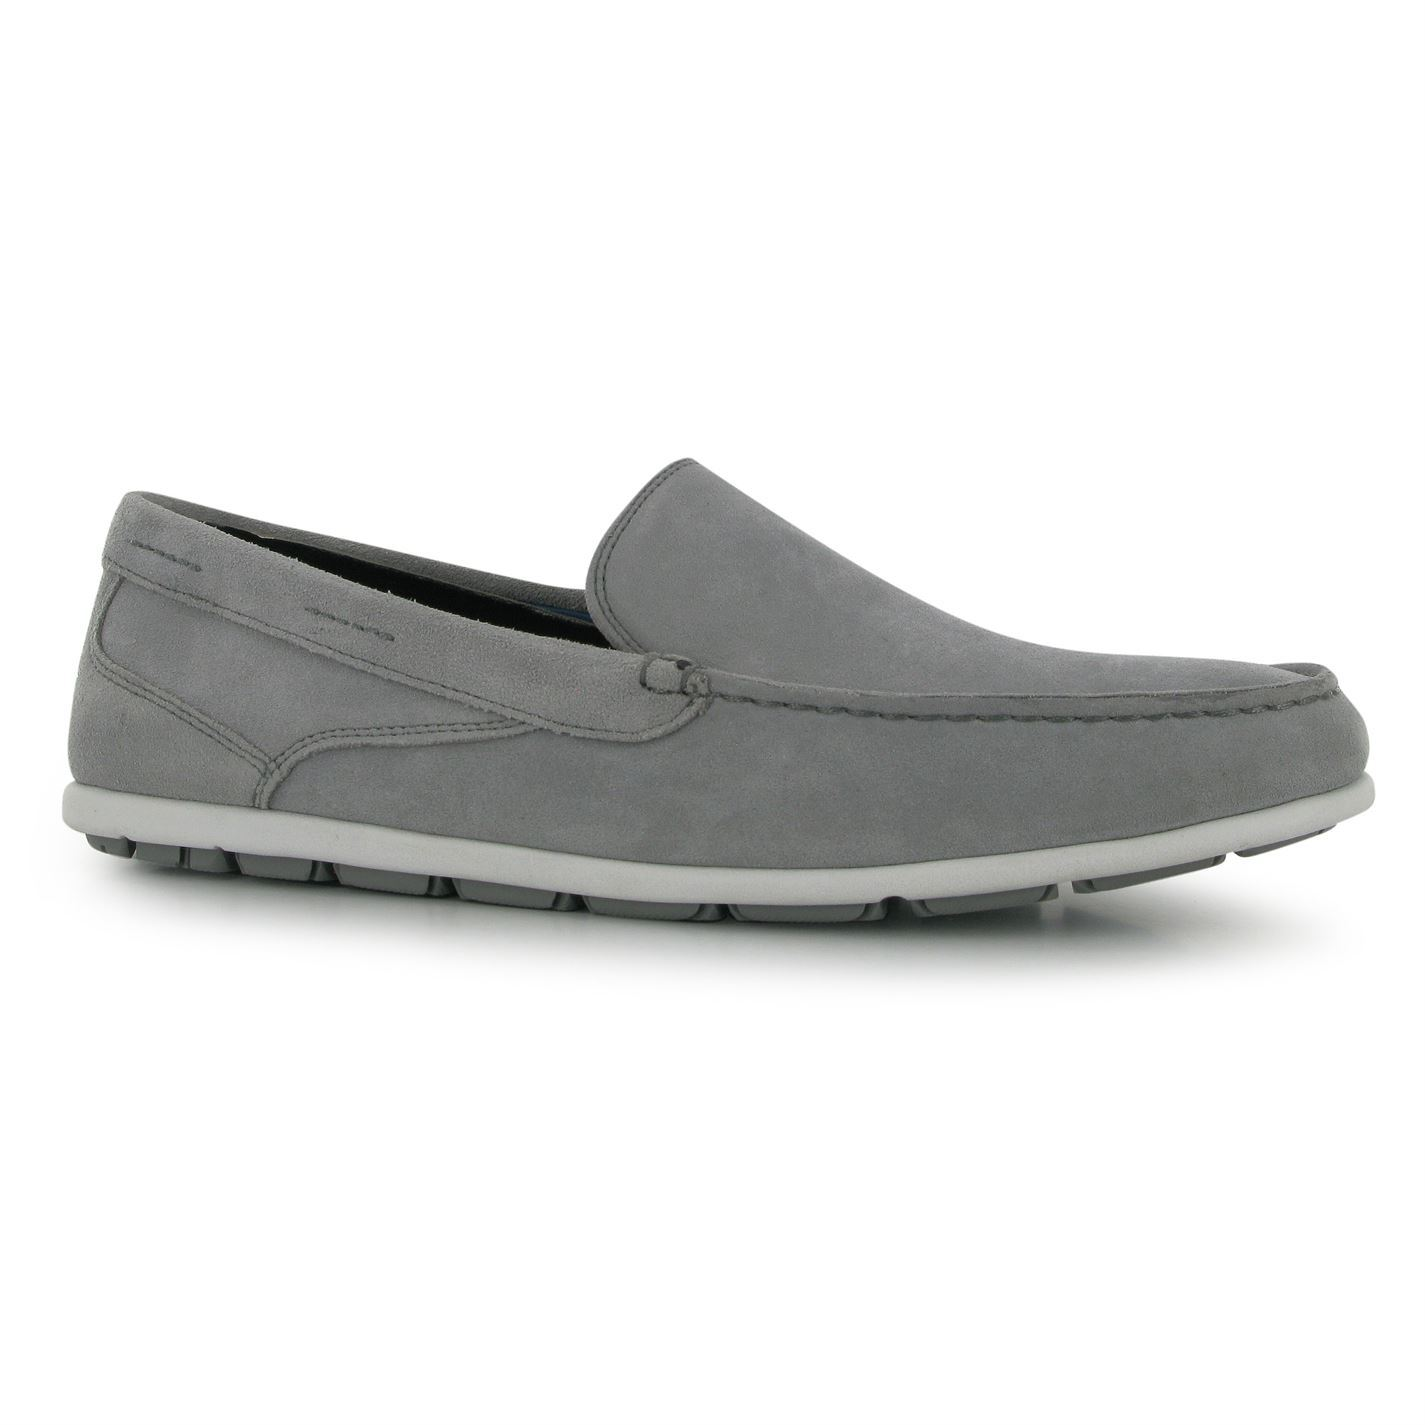 rockport mens venetian loafers lightweight slip